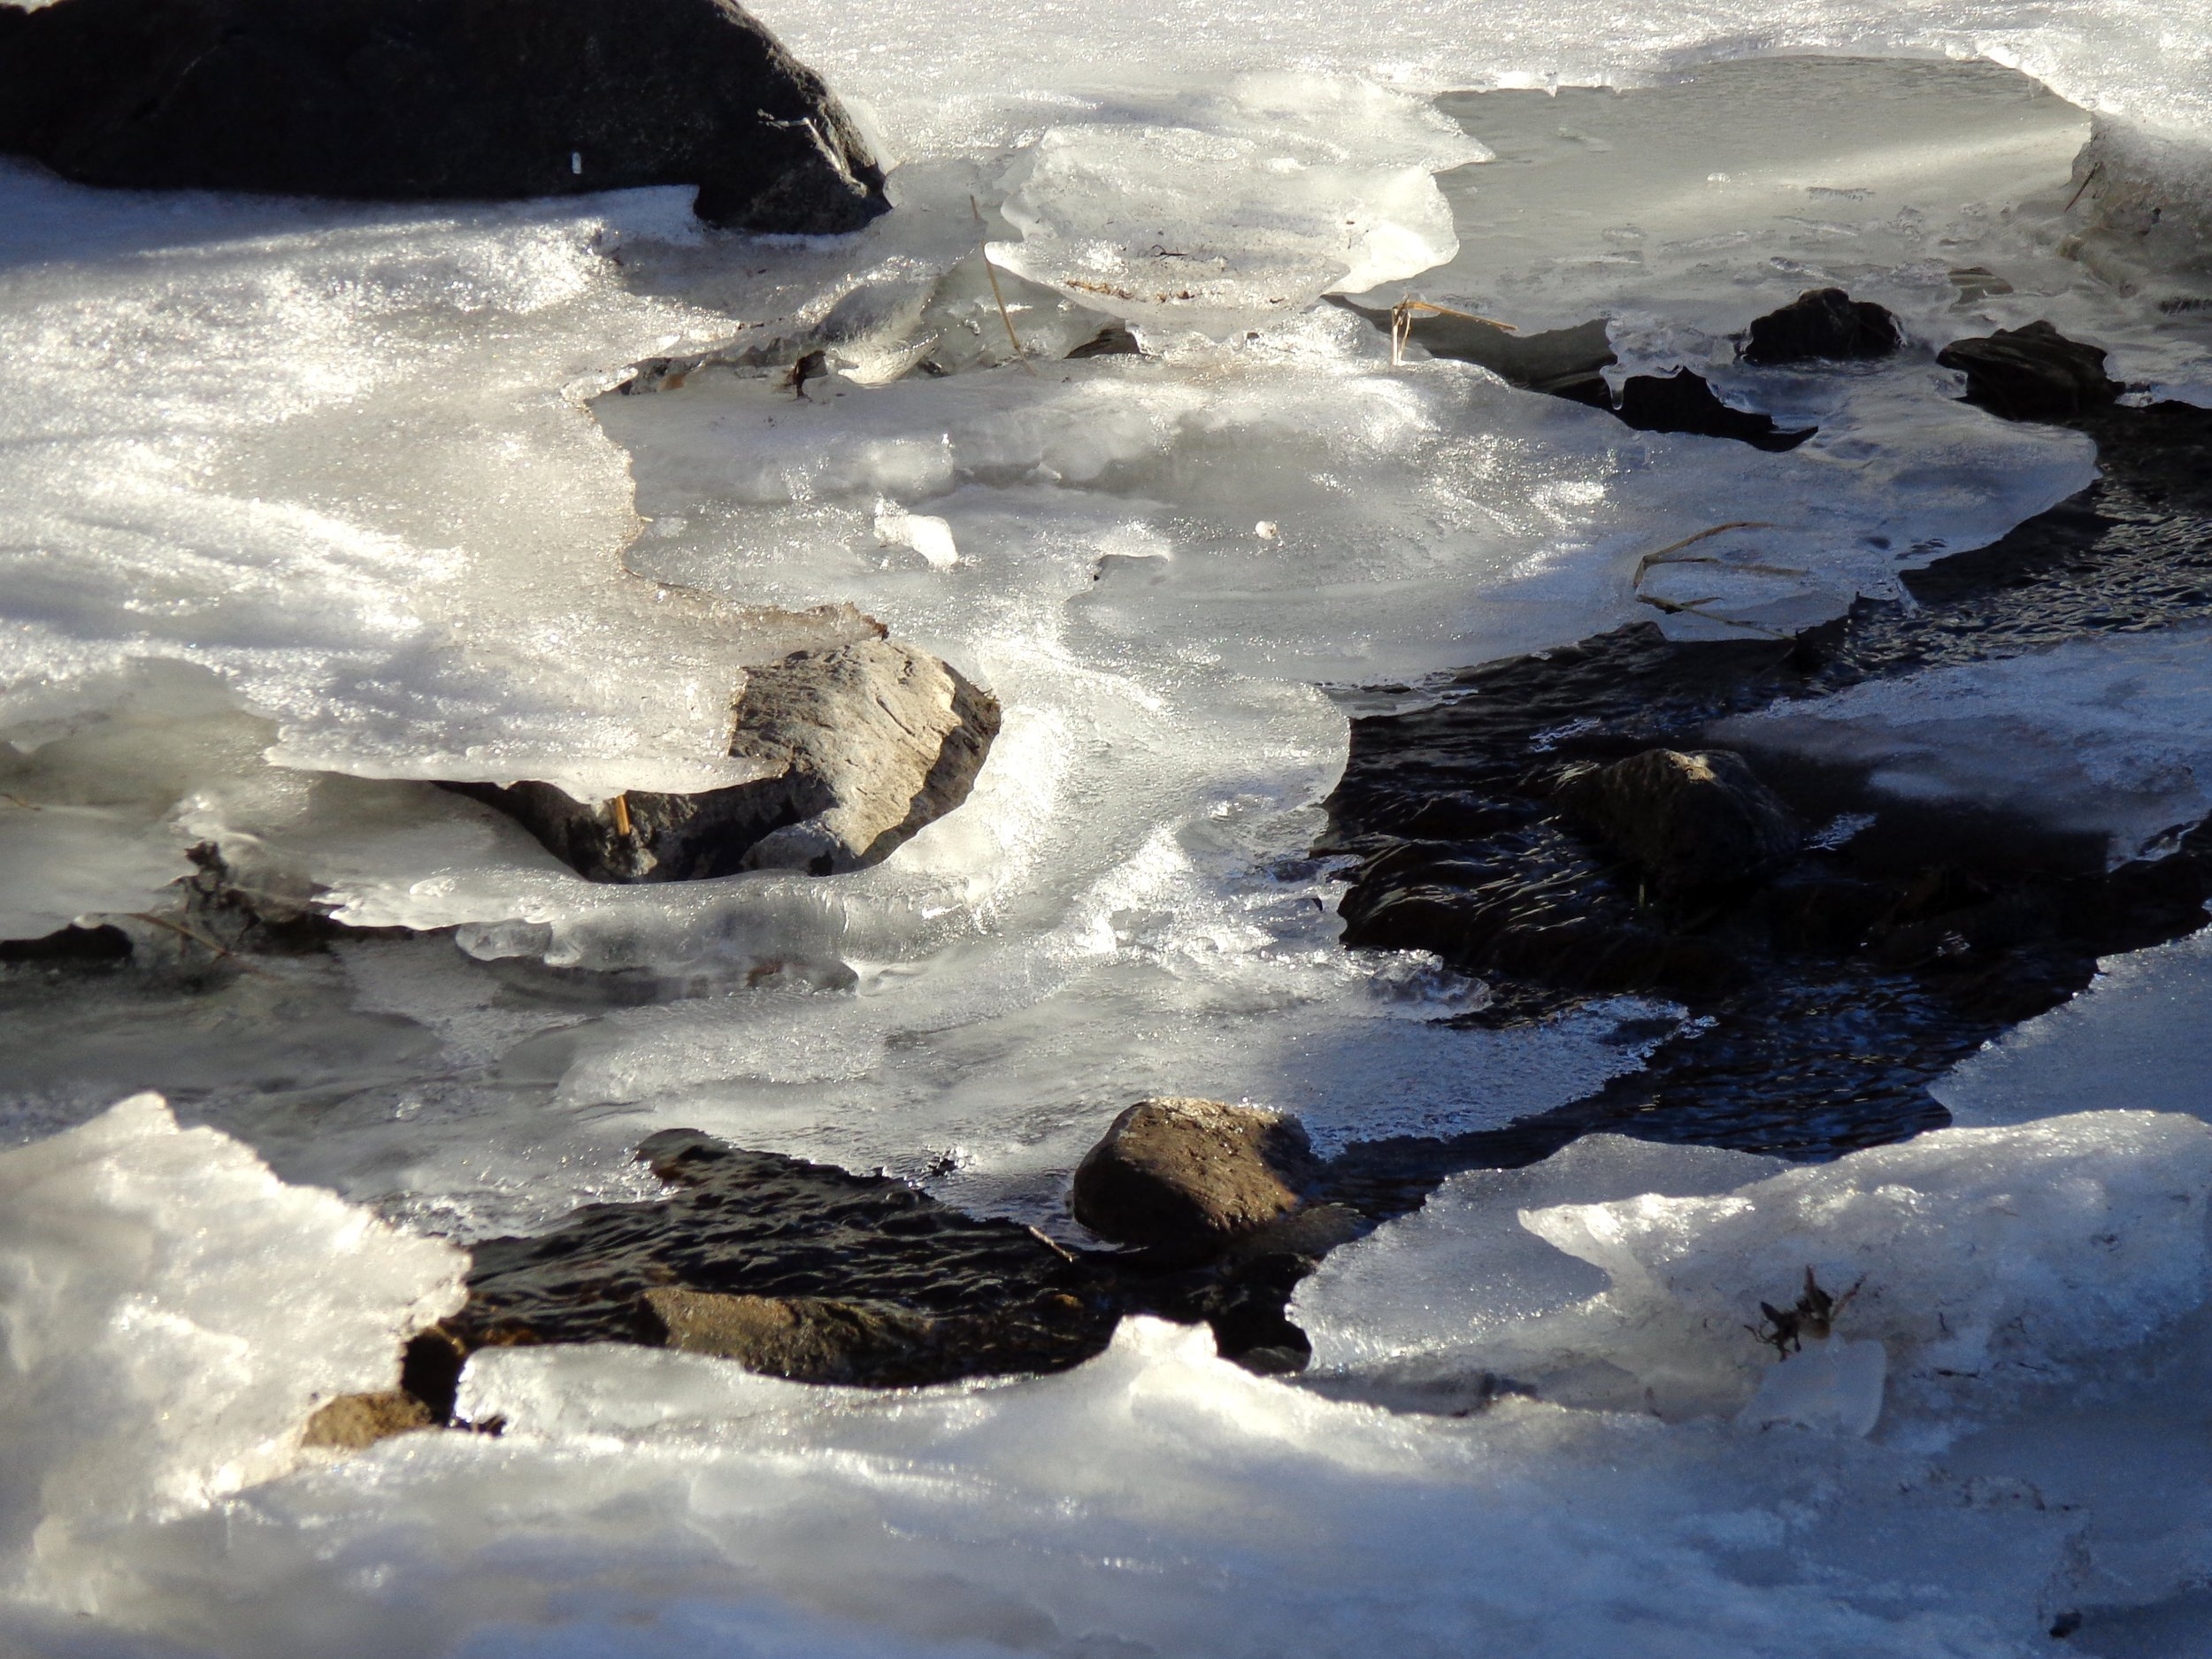 water-running-under-melting-ice-on-stream.jpg